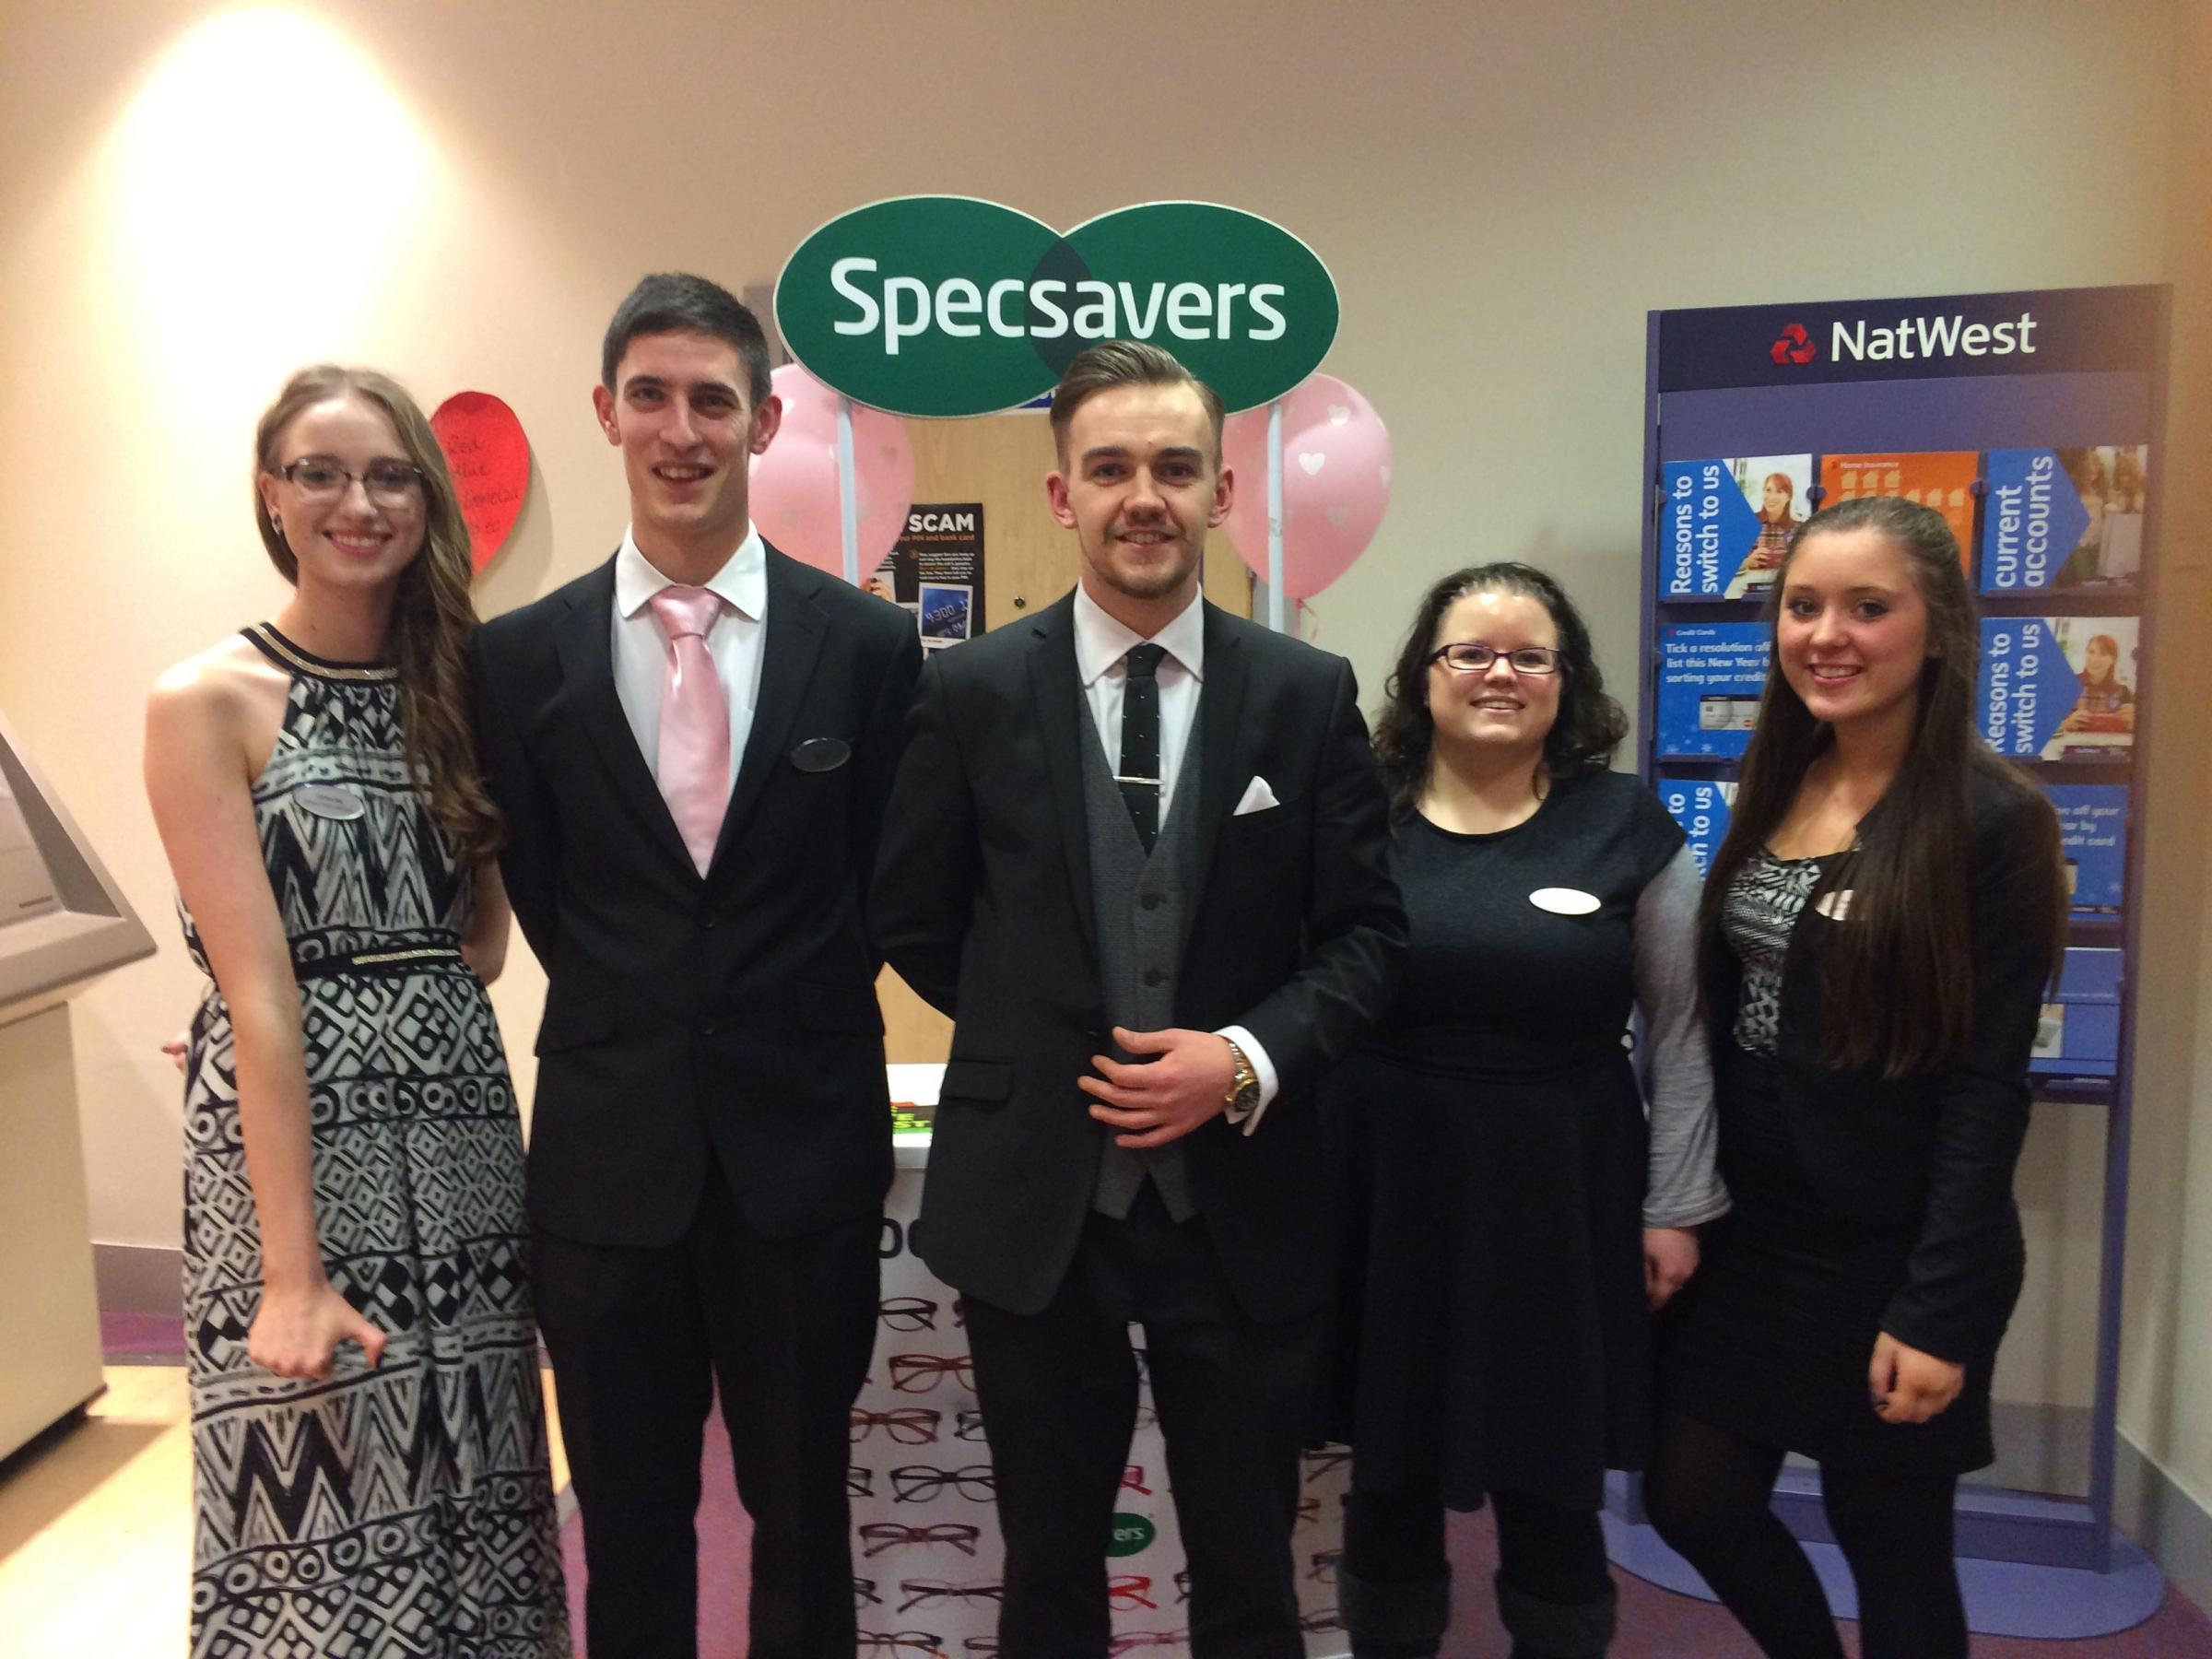 Win designer glasses with Specsavers Bromley